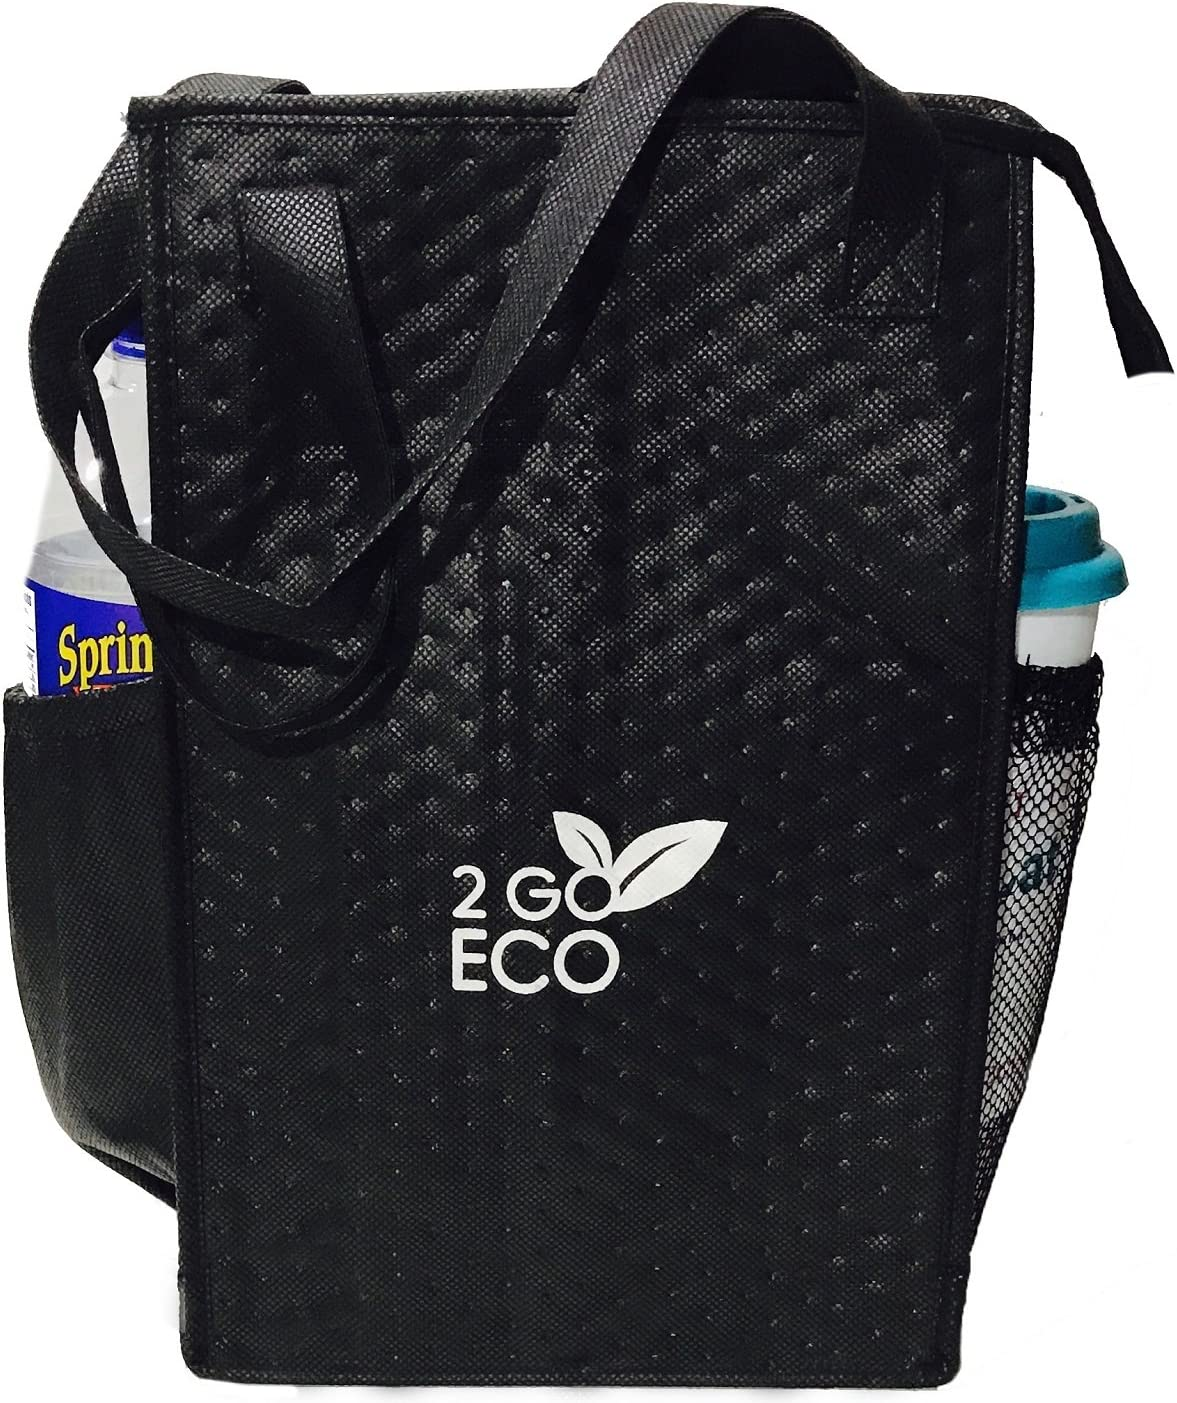 2GOECO Insulated Lunch Tote Bag | Wine and Water Bottle Carrier | Tall Thermal Cooler | Black